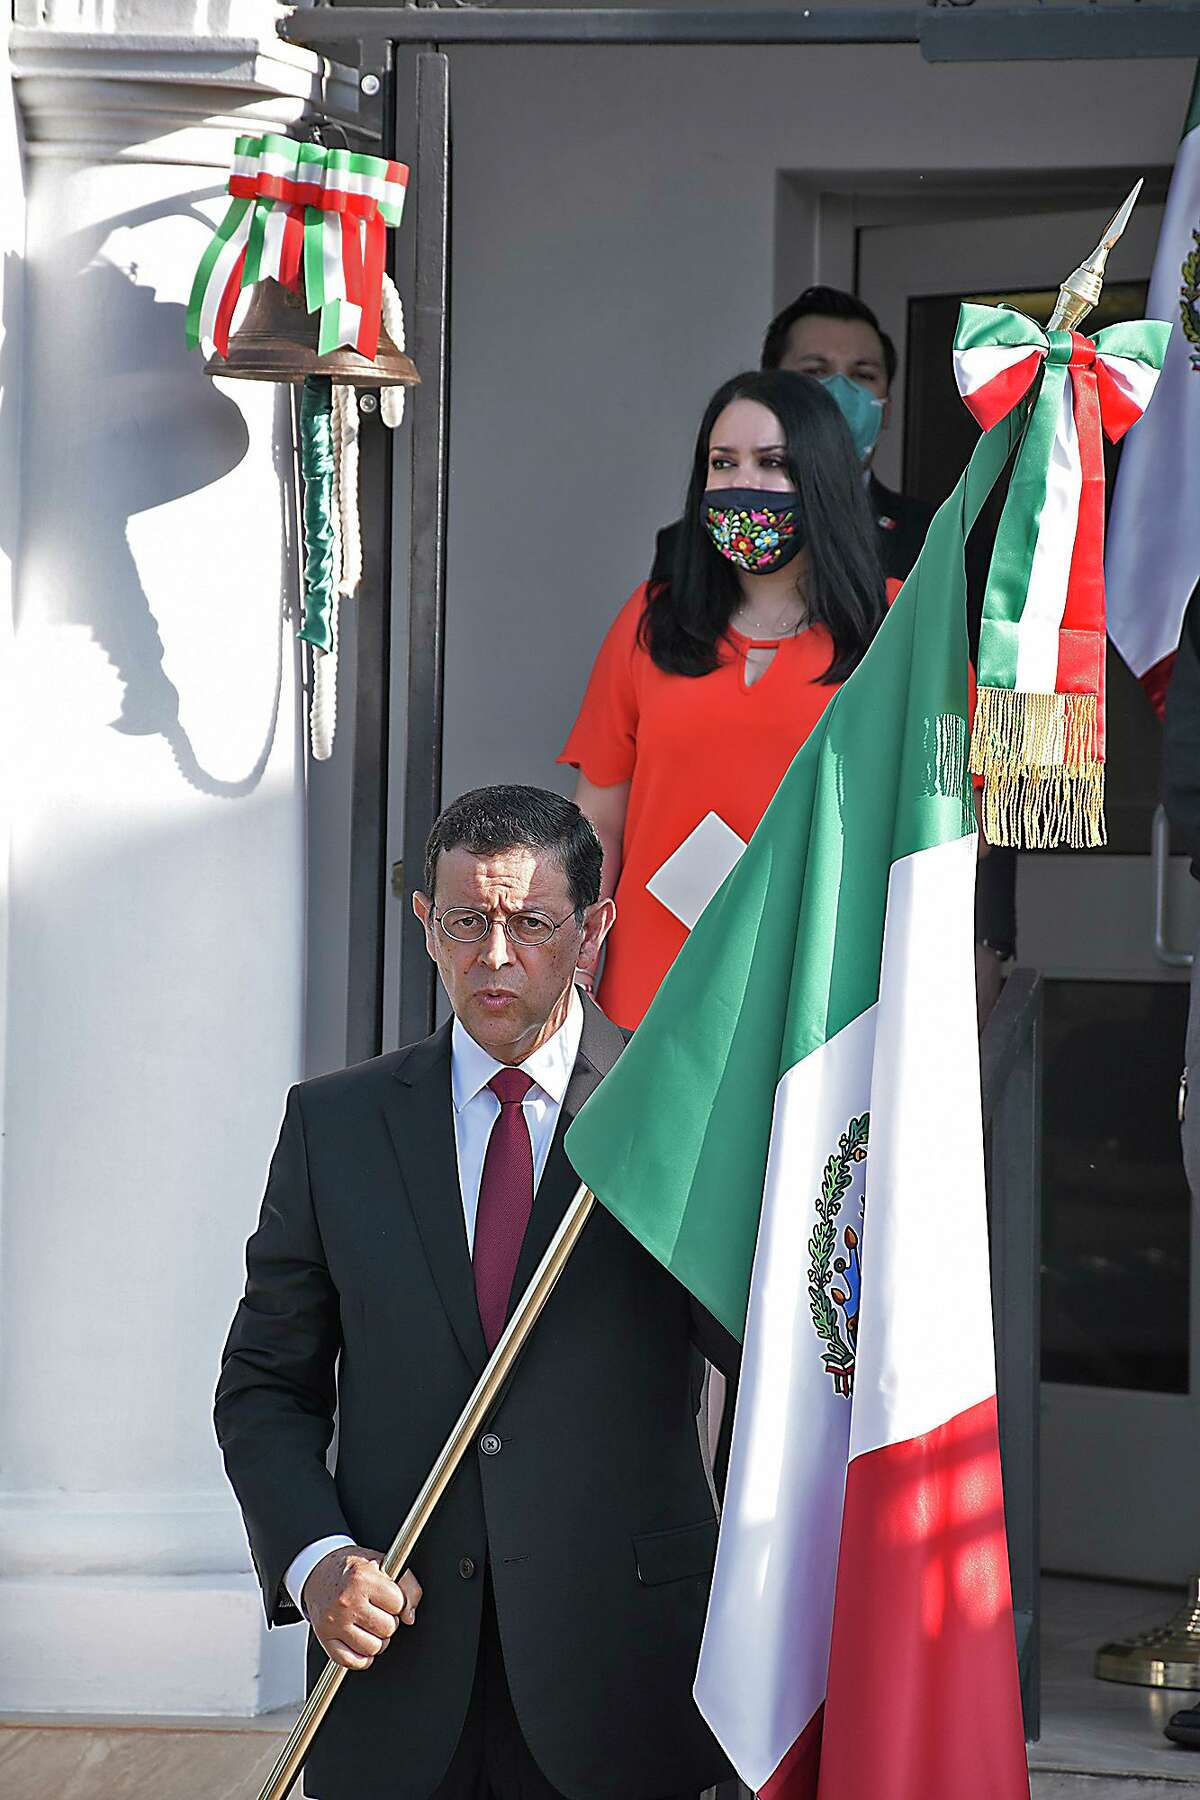 Mexican Consul General at the Mexican Consulate in Laredo, Juan Carlos Mendoza Sanchez celebrated the traditional Grito to mark the 210 Anniversary of Mexico's Independence, Tuesday, September 15, 2020.